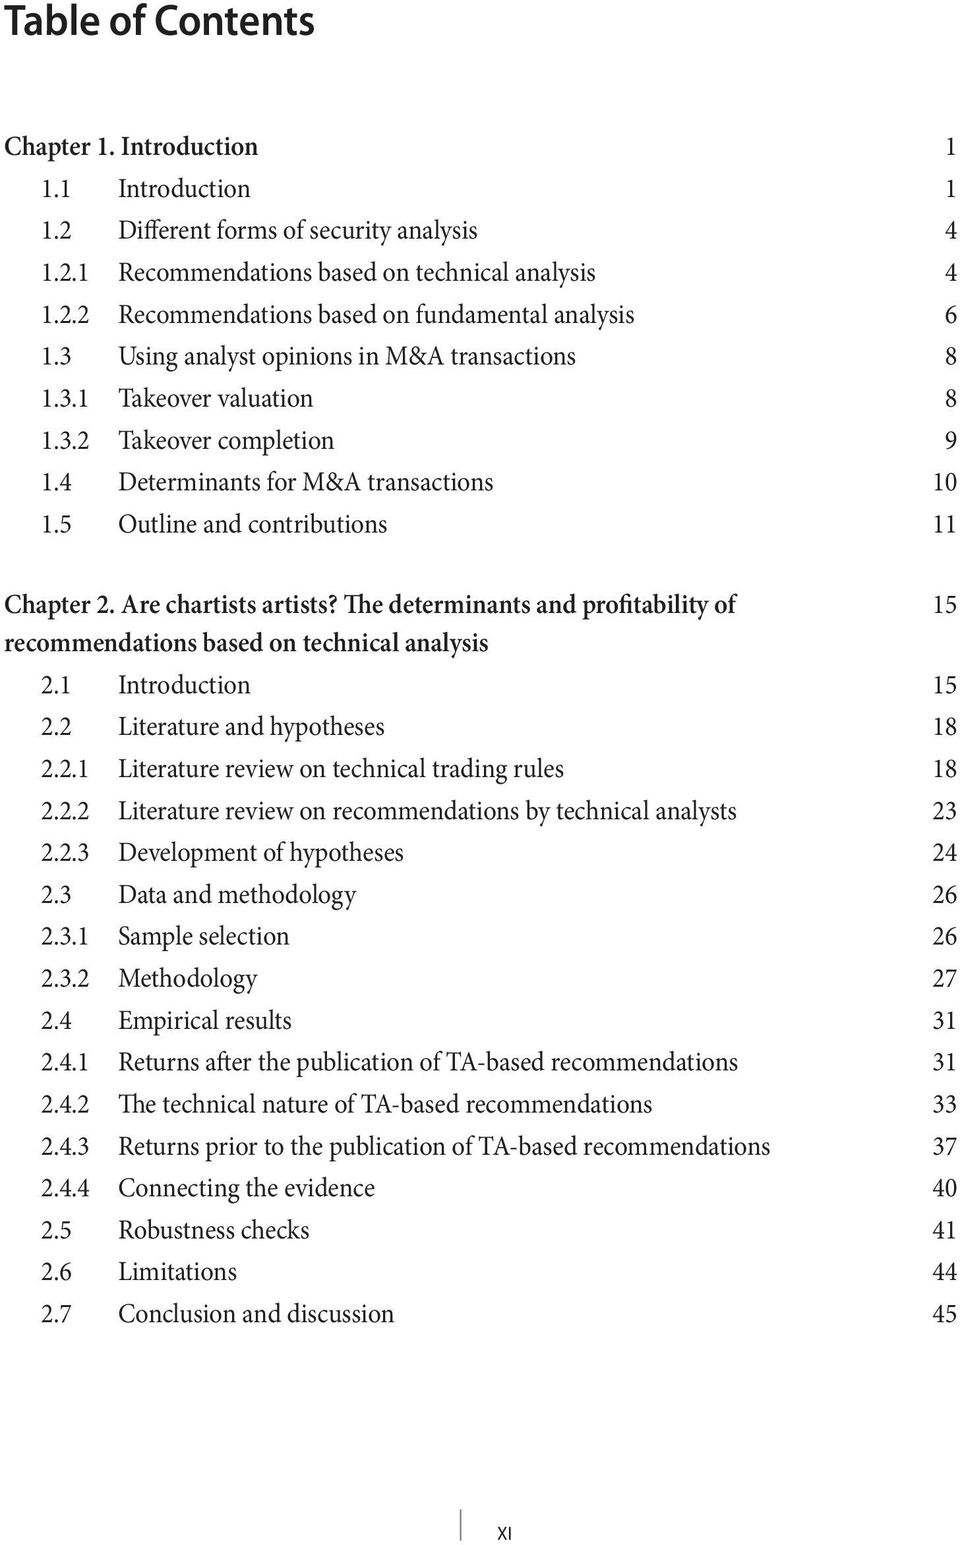 Are chartists artists? The determinants and profitability of 15 recommendations based on technical analysis 2.1 Introduction 15 2.2 Literature and hypotheses 18 2.2.1 Literature review on technical trading rules 18 2.